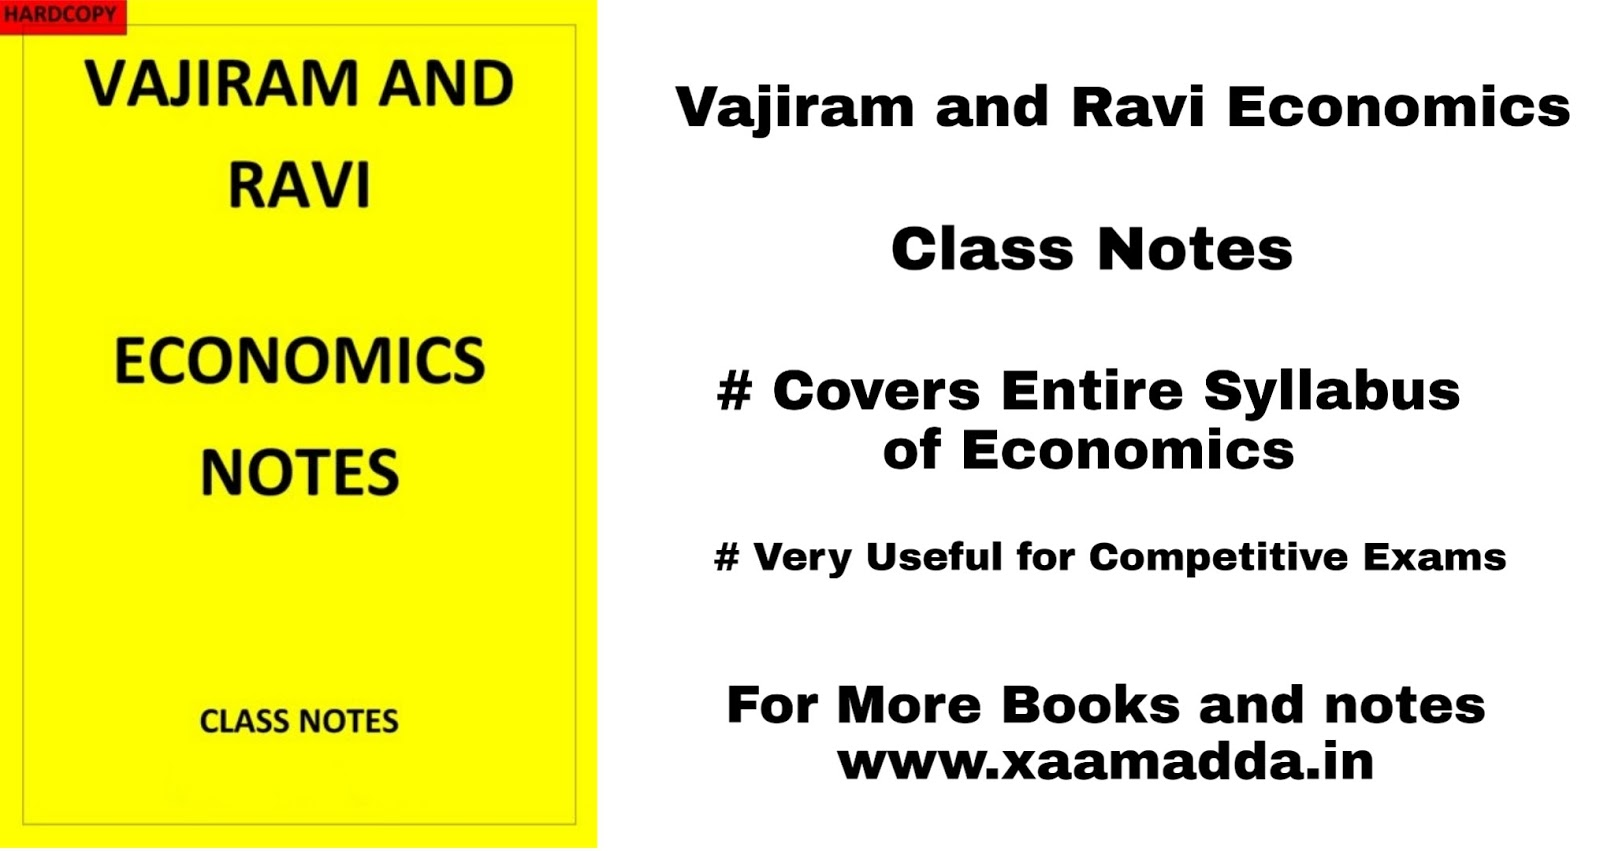 Ias Mains Books Pdf